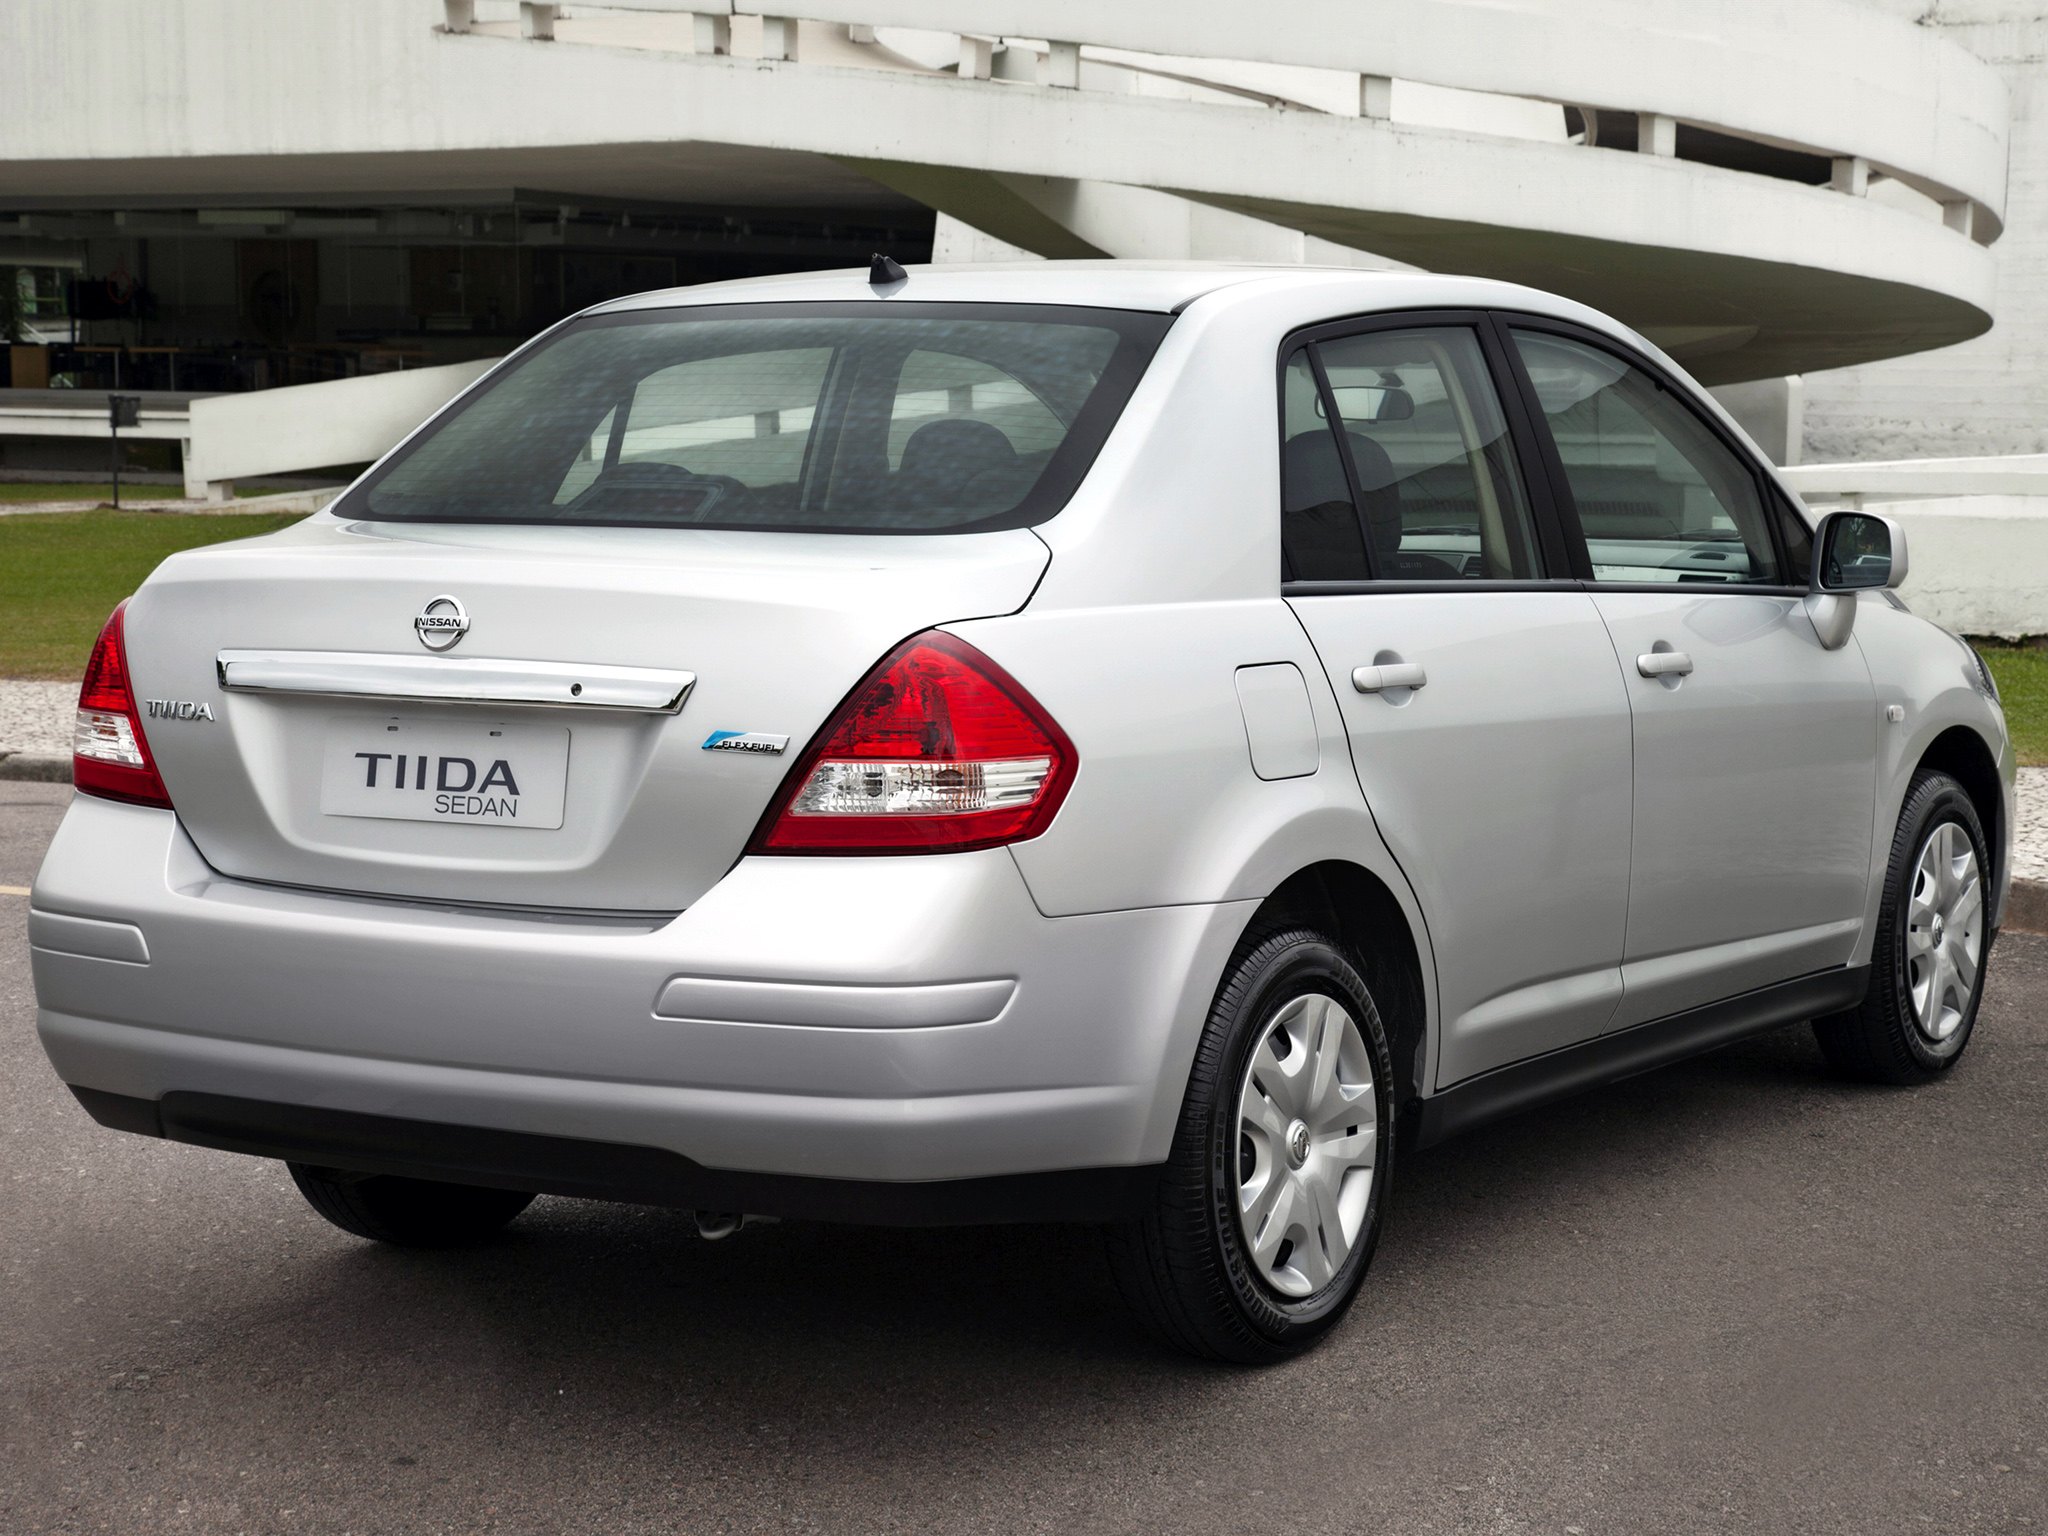 nissan tiida sedan 2010 pictures